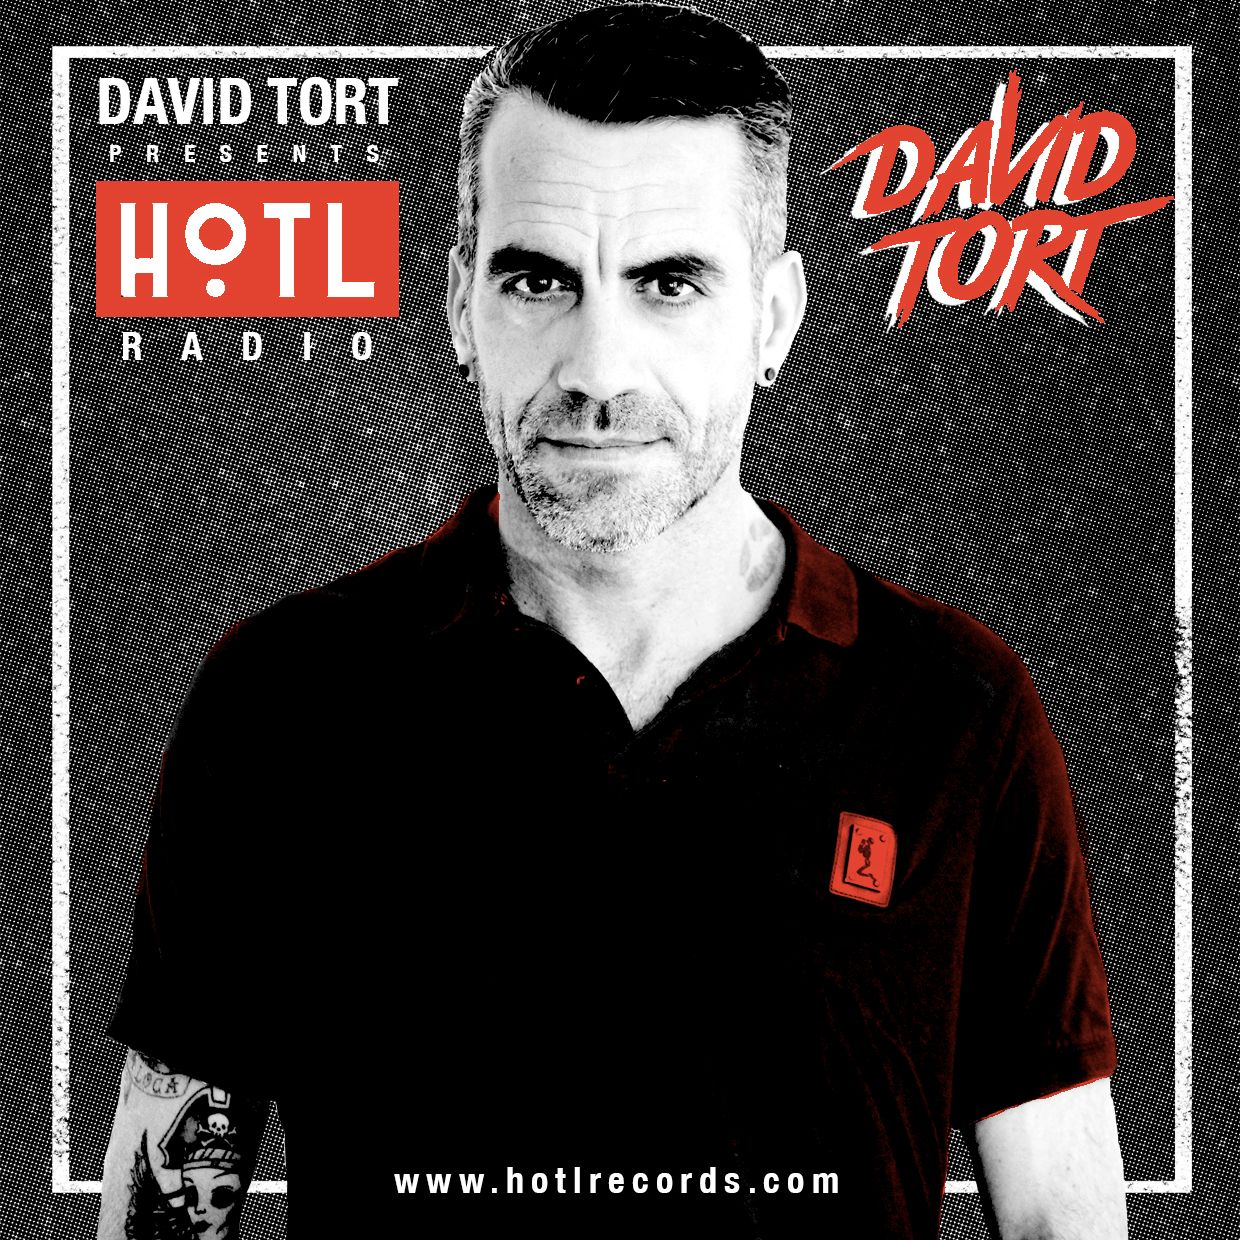 David Tort Presents HoTL Radio 165 (David Tort Mix)